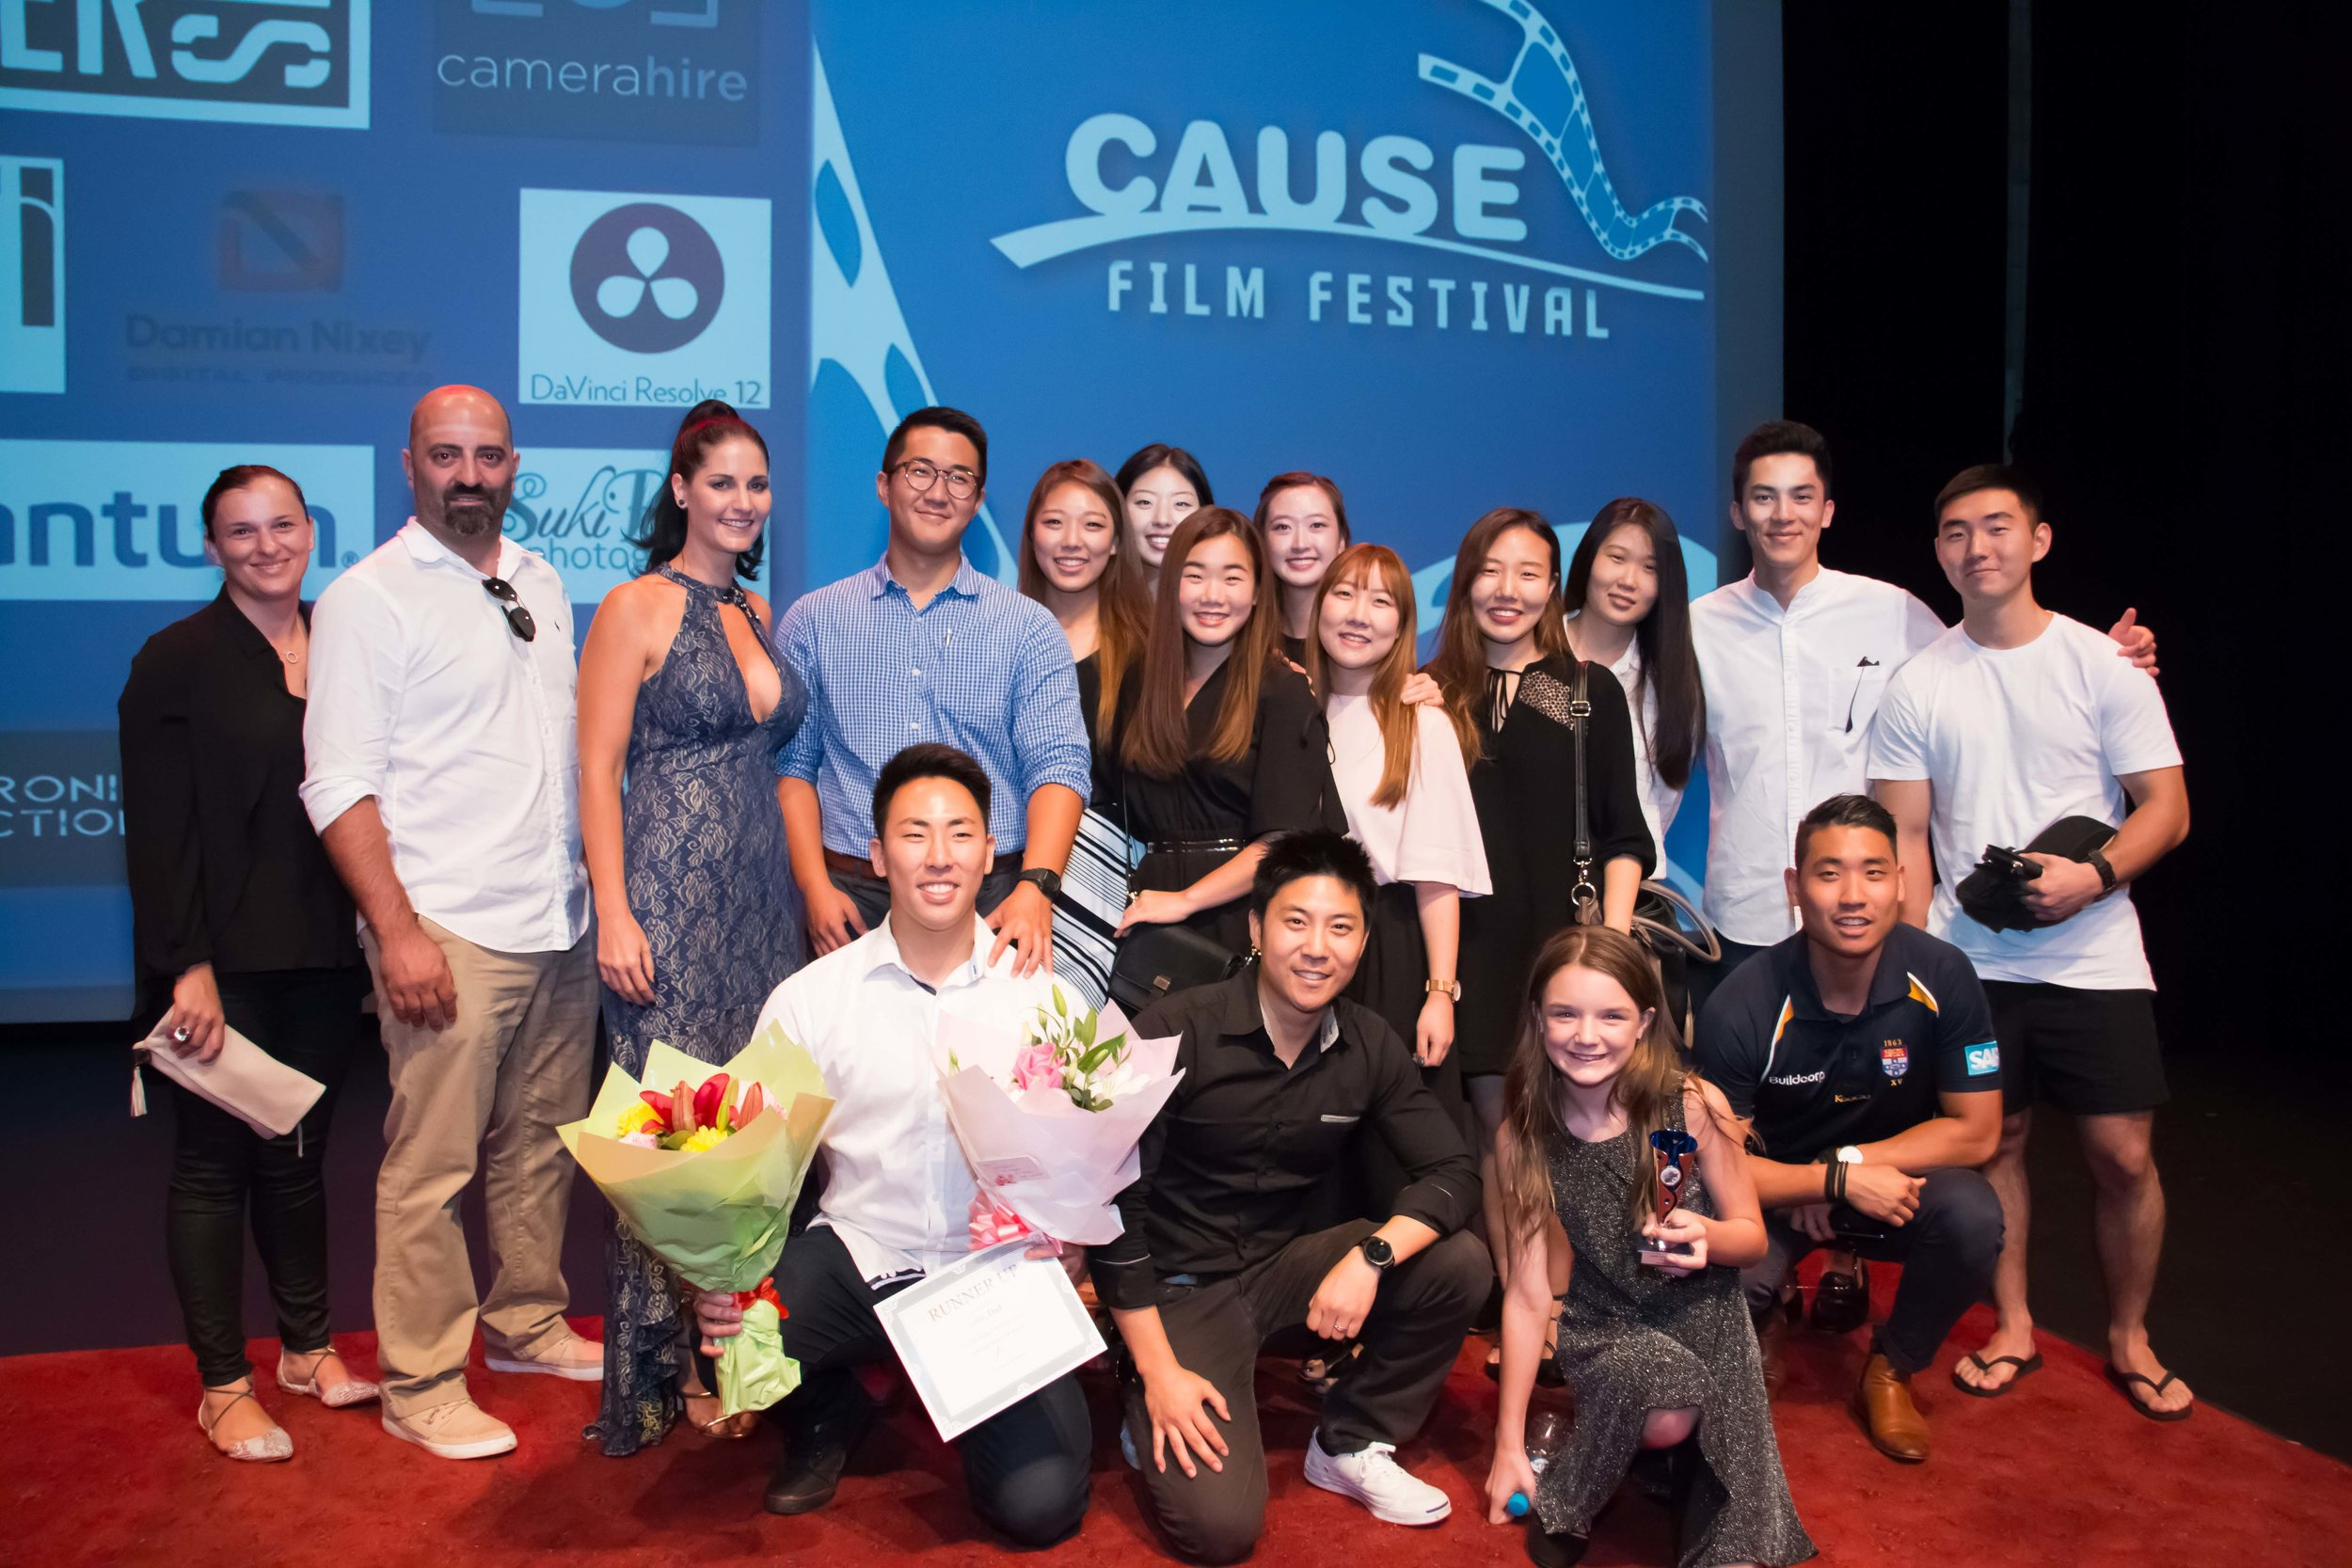 2017 Cause Film Festival Runners Up